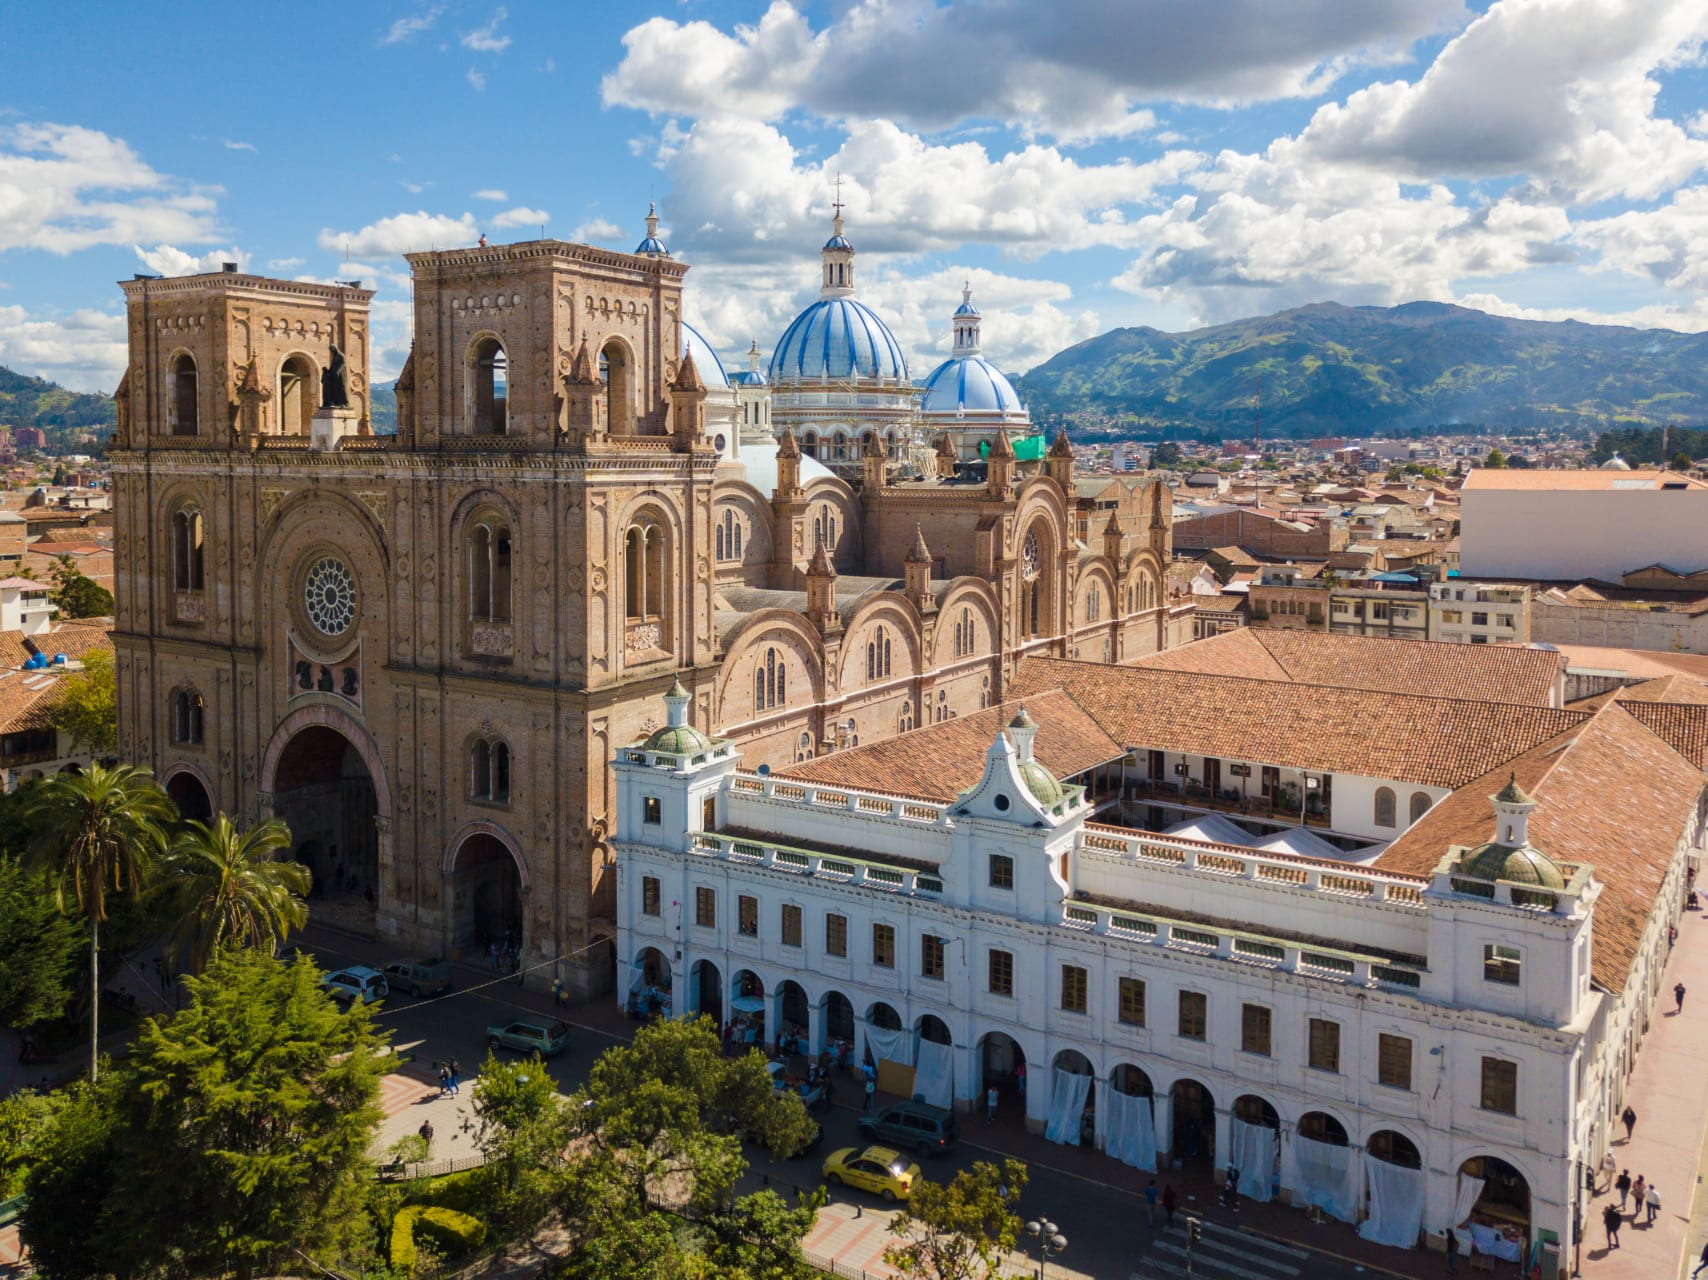 Cuenca - Cuenca Historical Center: The Most Beautiful City in Ecuador